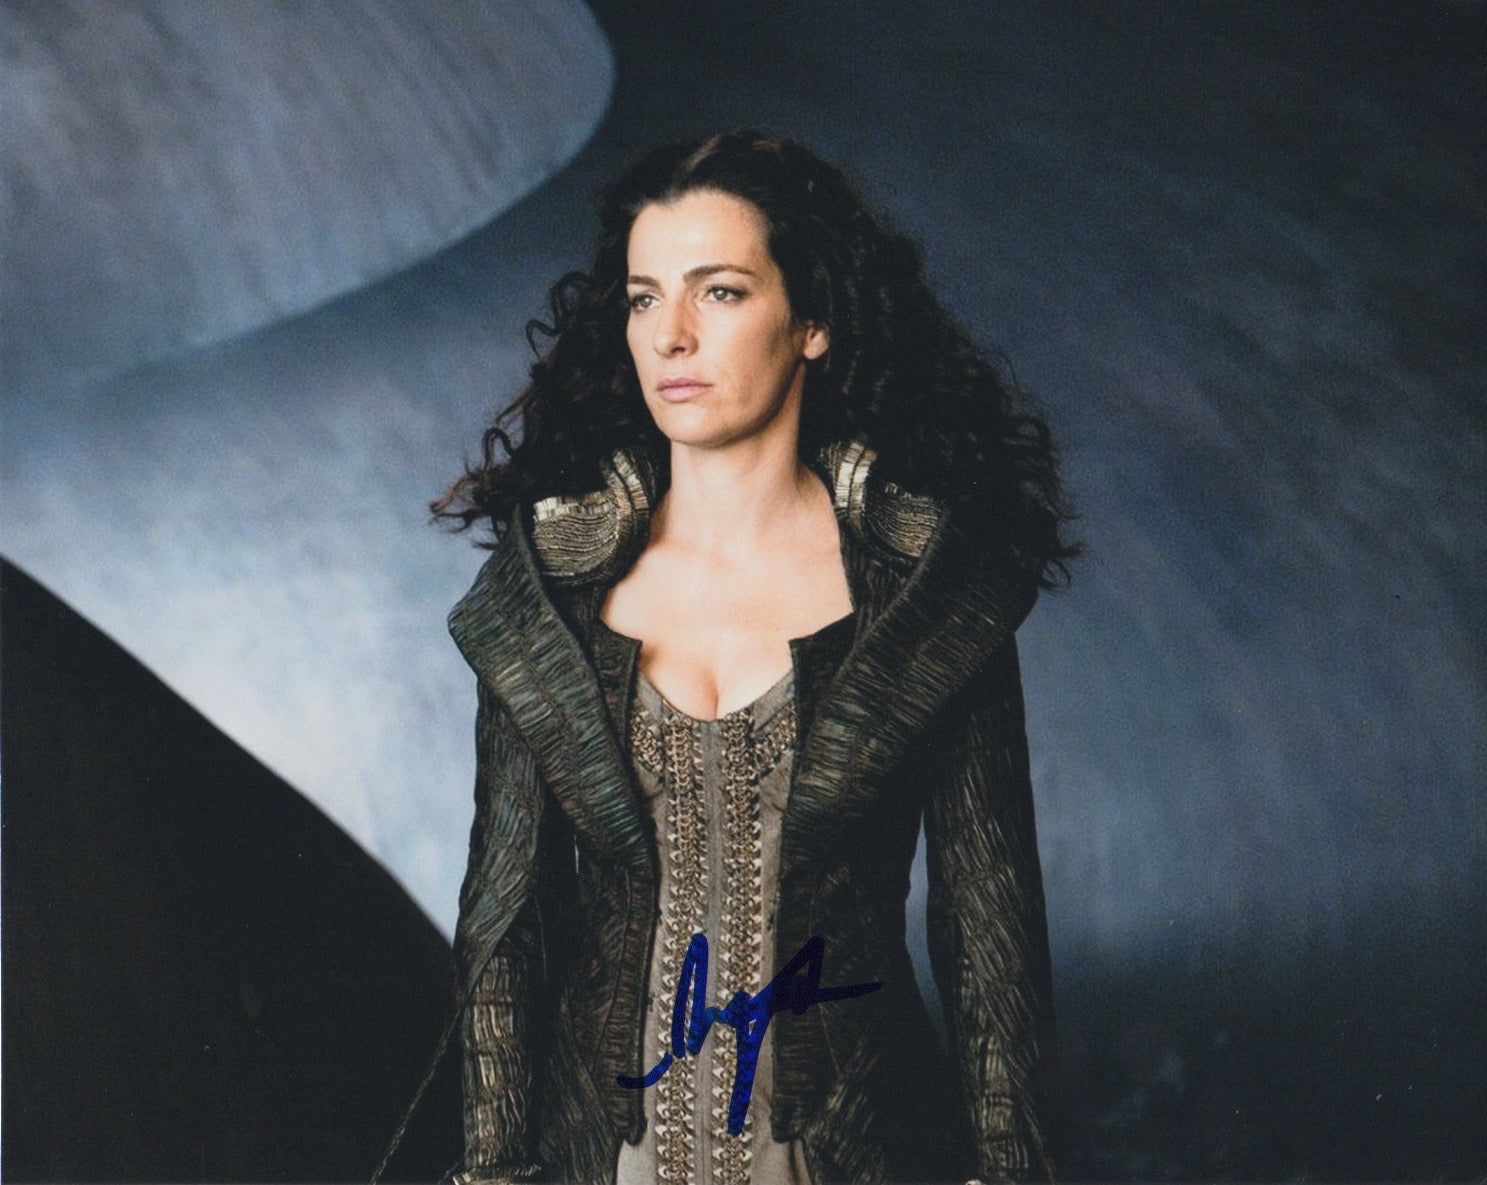 Ayelet Zurer Man of Steel Signed Autograph 8x10 Photo - Outlaw Hobbies Authentic Autographs